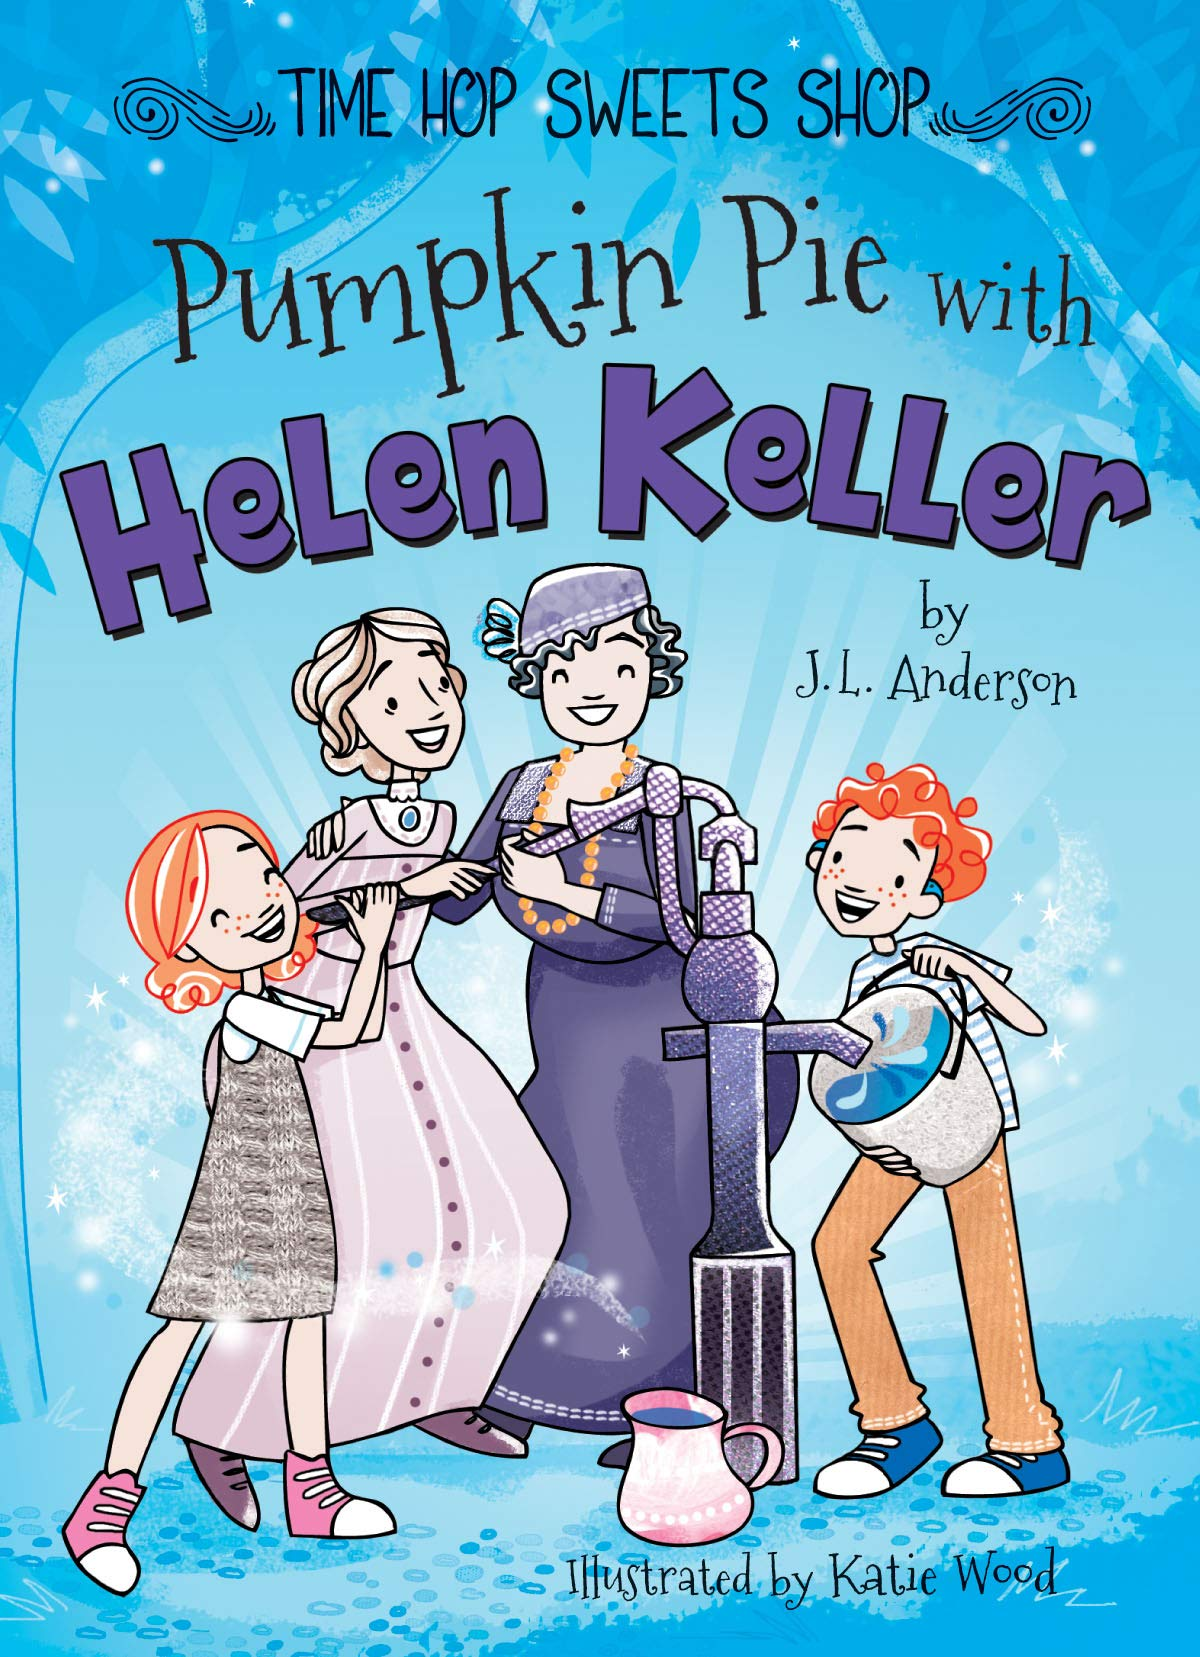 Pumpkin Pie with Helen Keller (Time Hop Sweets Shop)